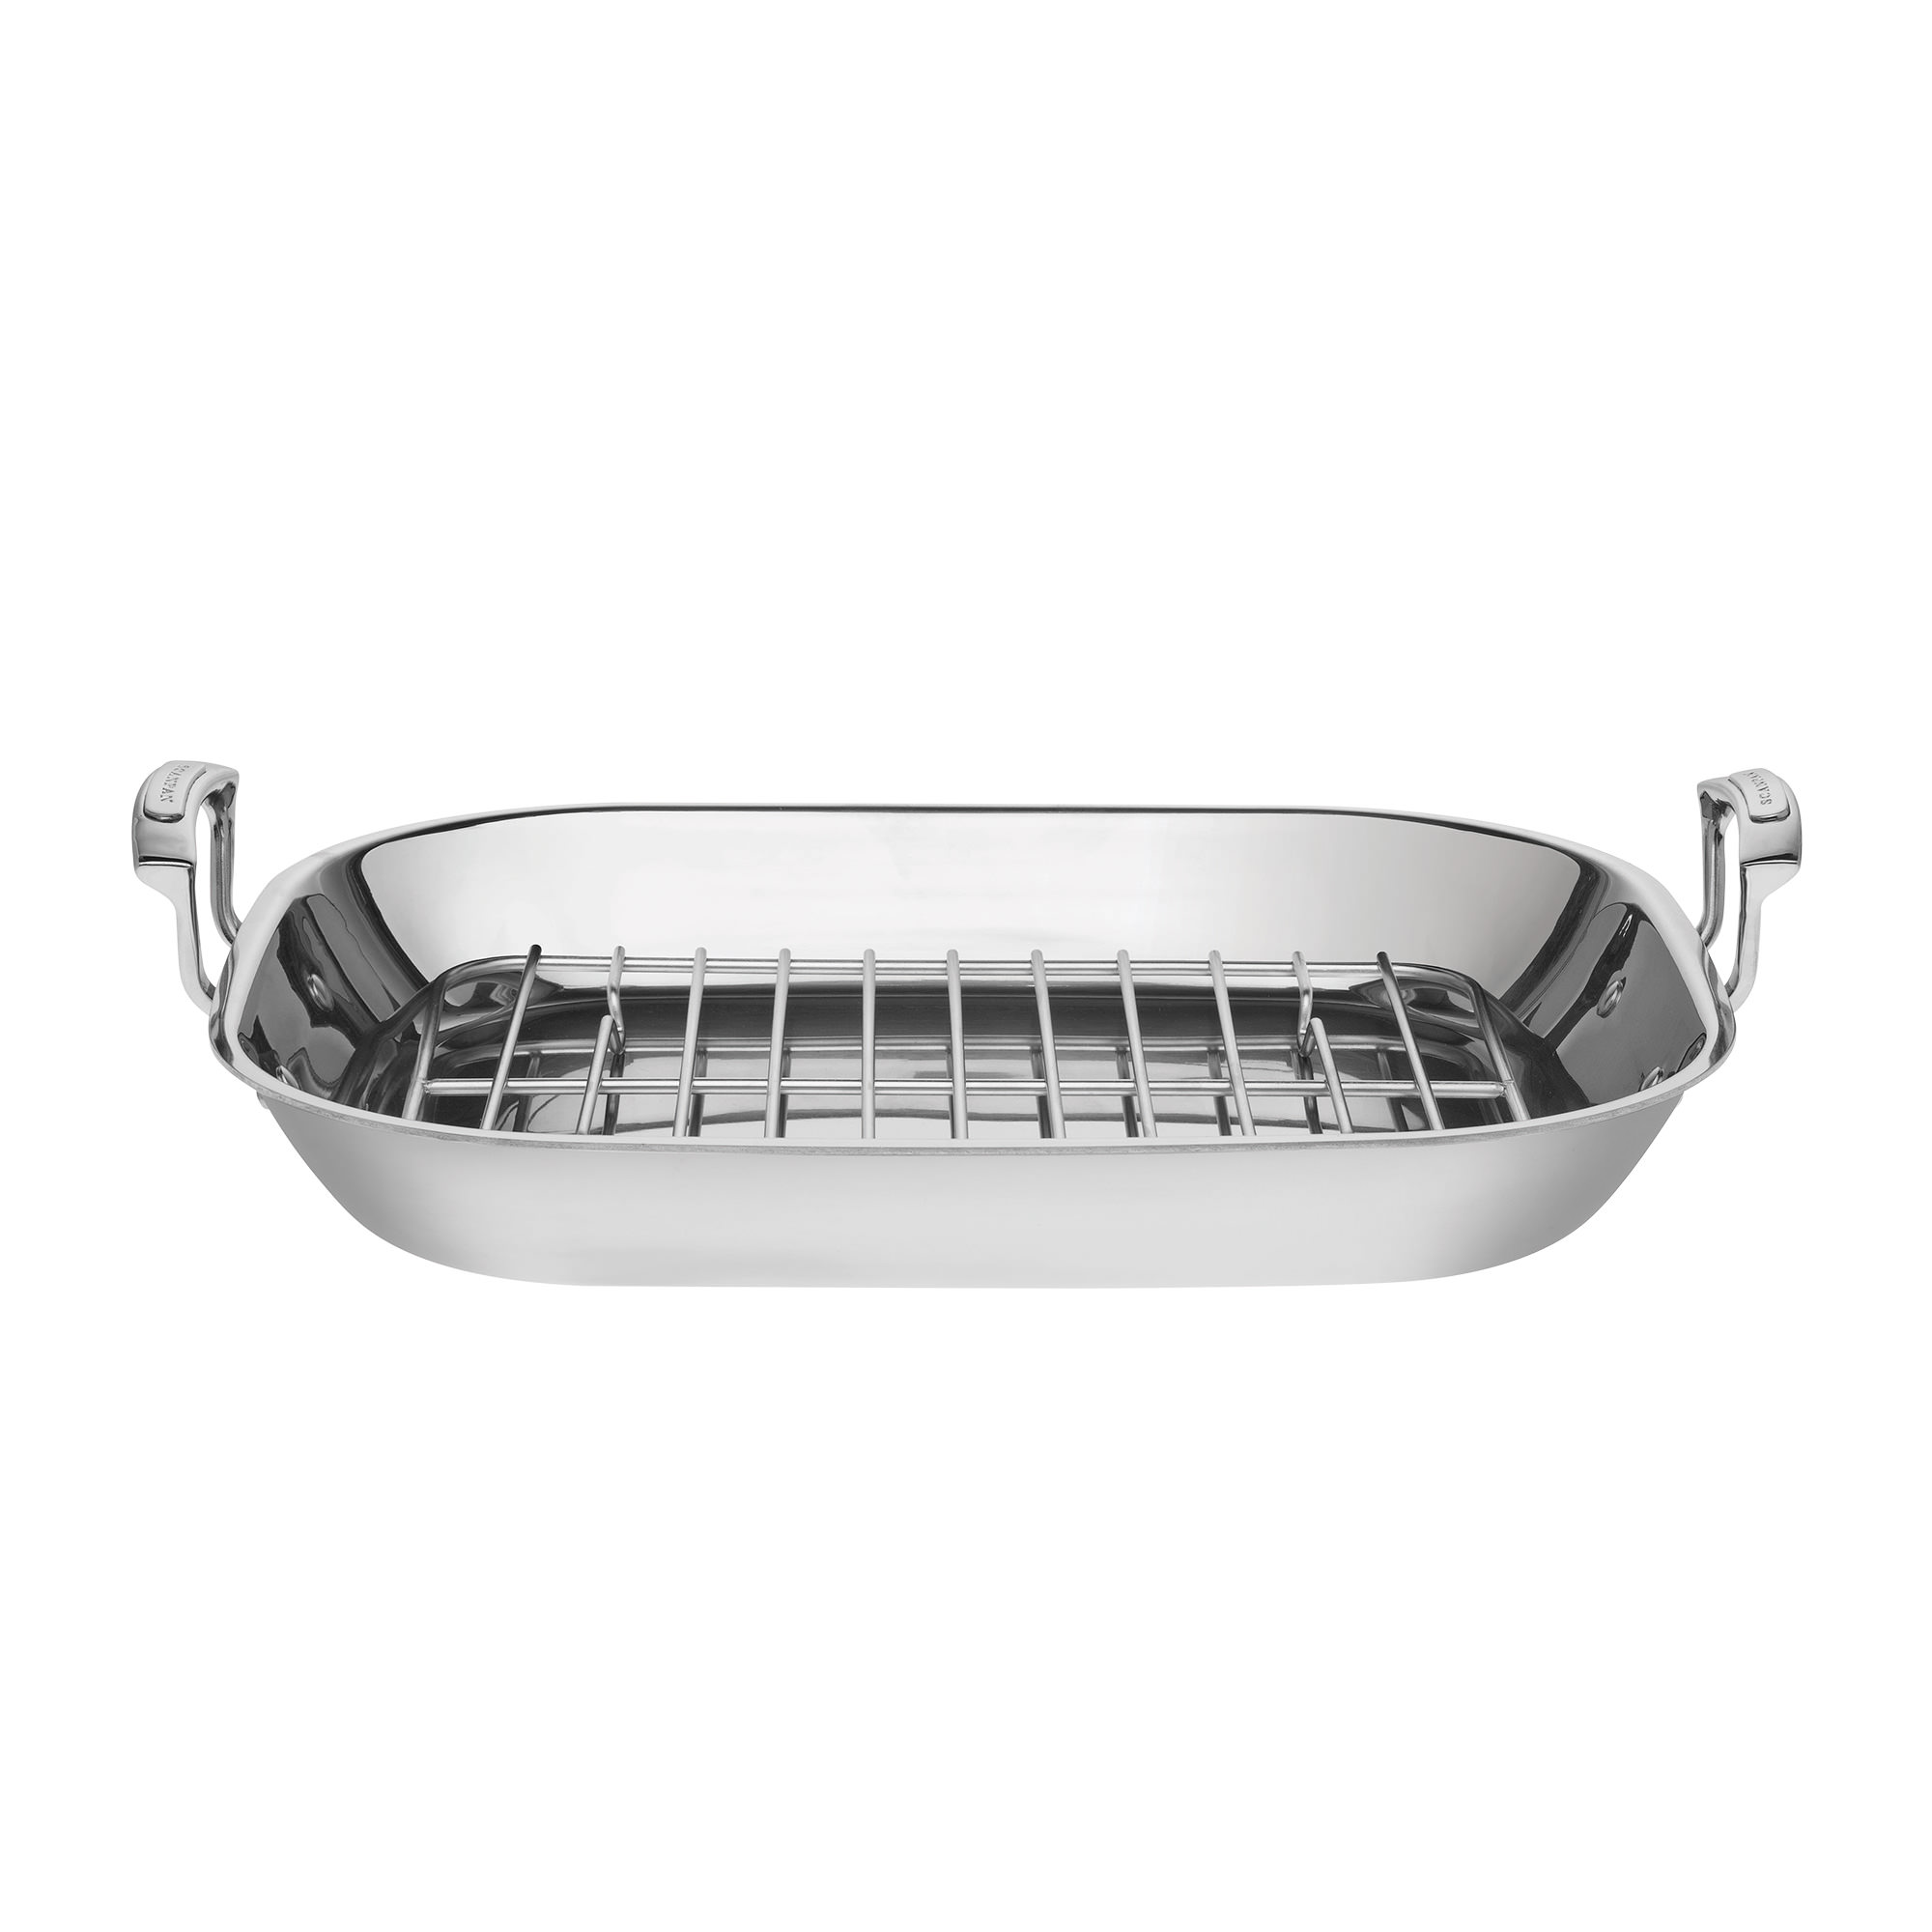 Scanpan Clad 5 Induction Conical Roasting Pan 49x36x10.5cm